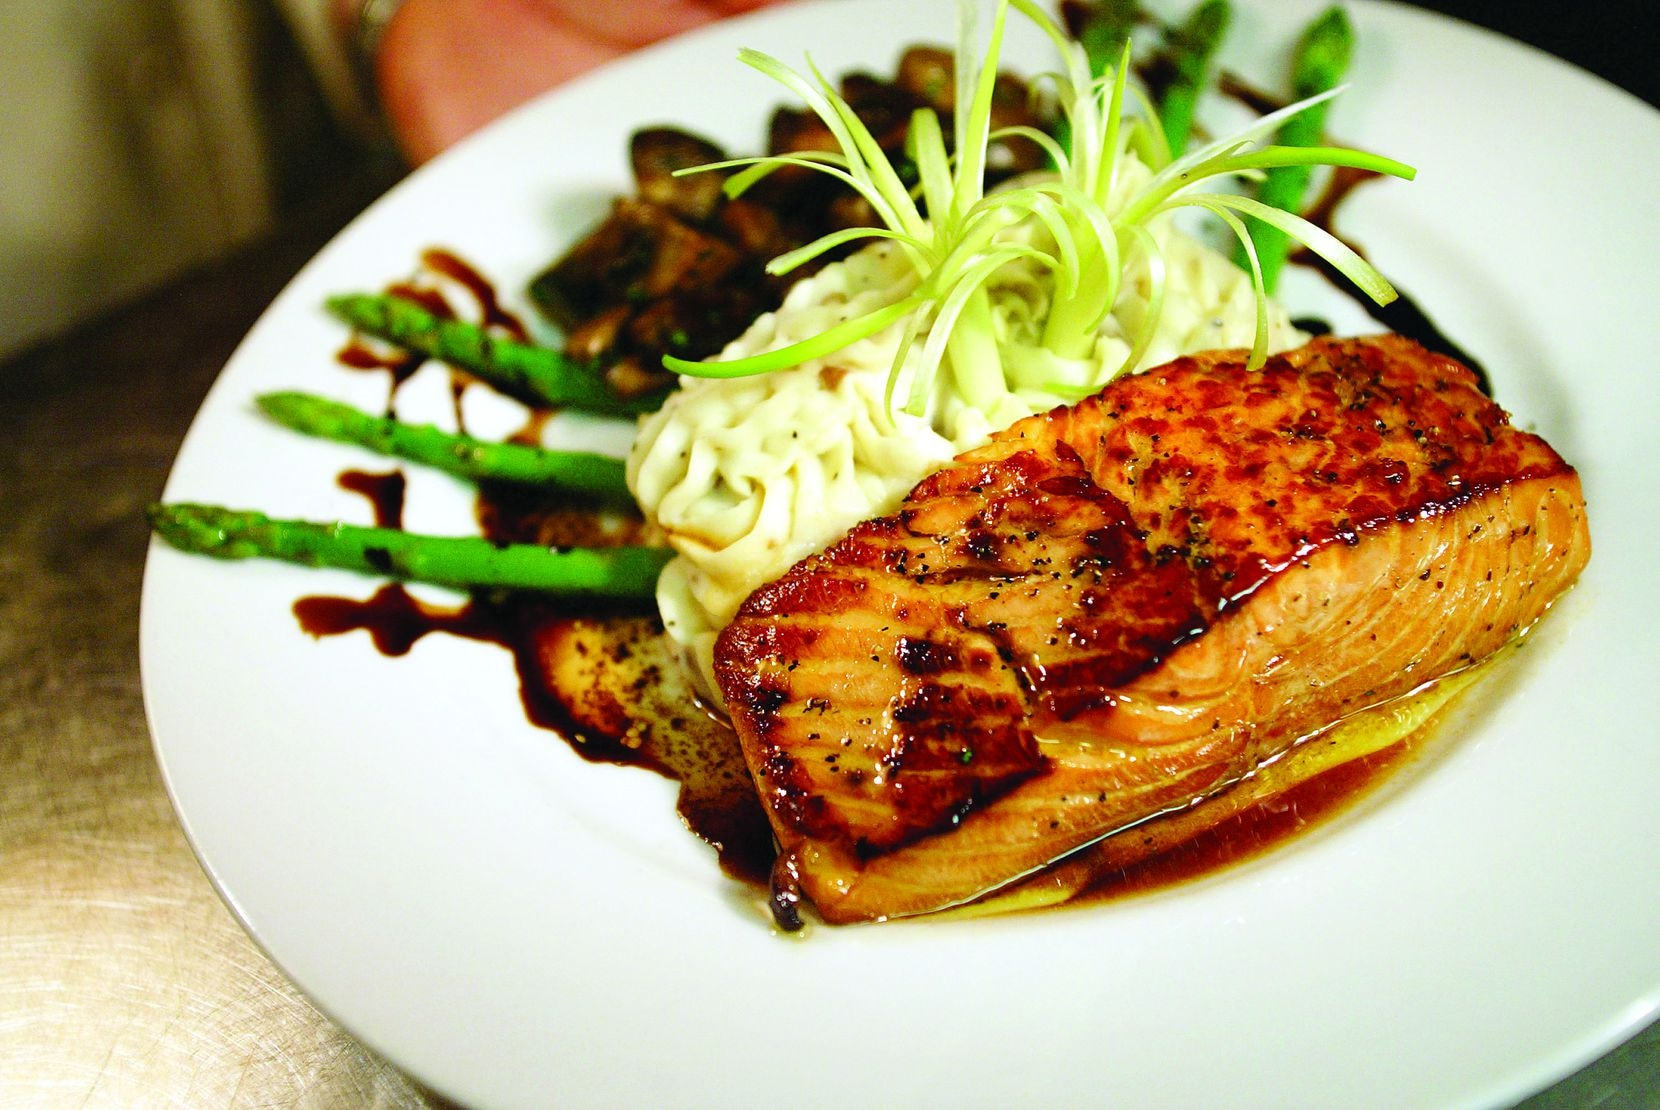 The Classic Cafe at Roanoke offers soy-glazed salmon as part of its Valentine's Day takeout offerings this year.